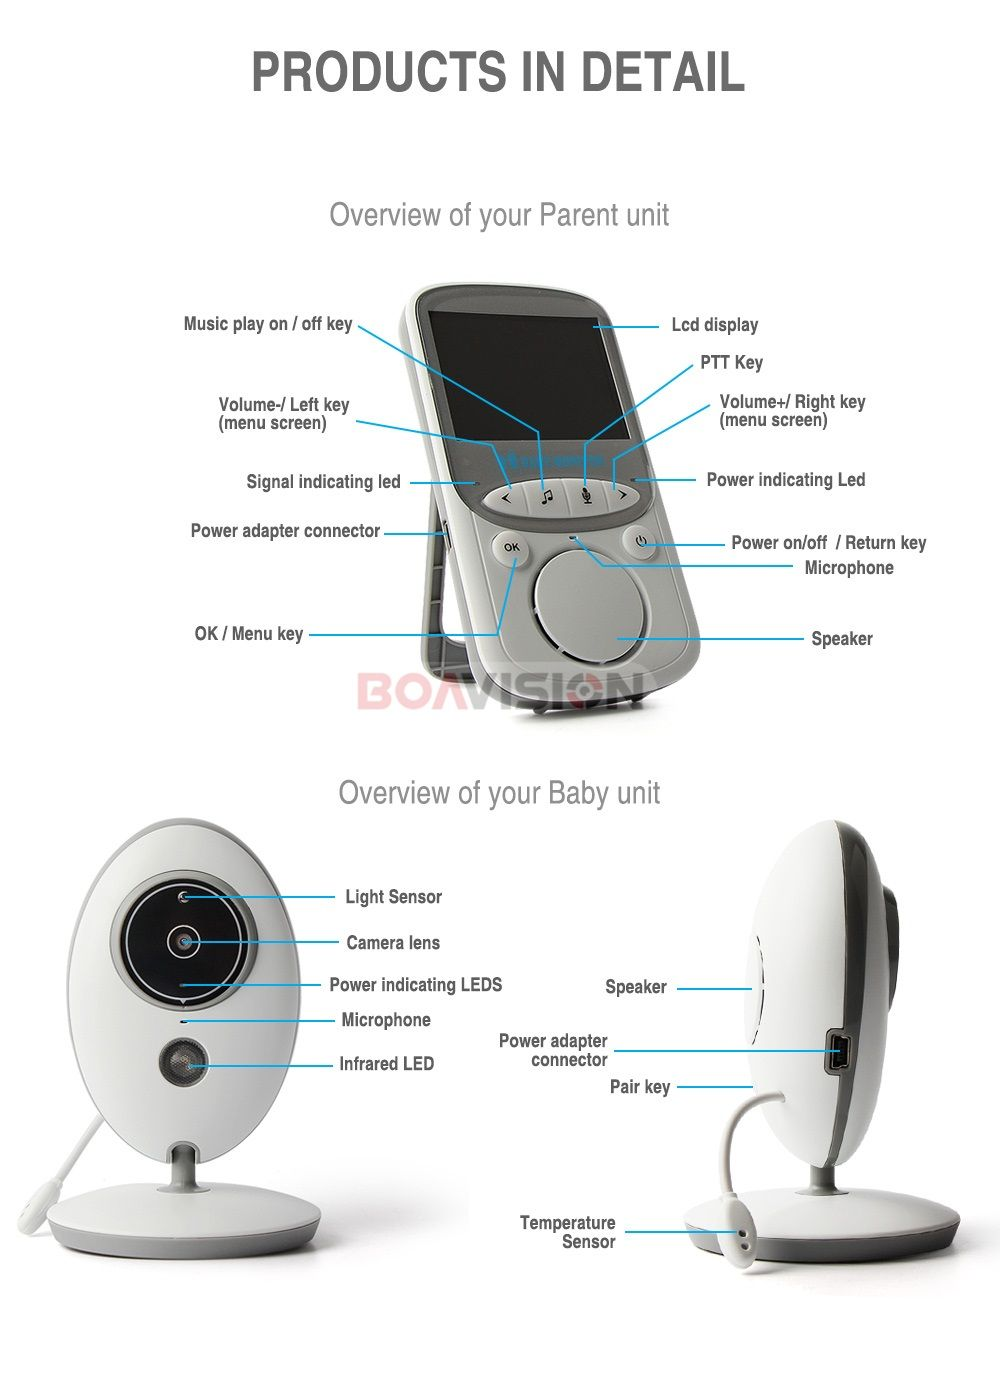 WIRELESS LCD AUDIO VIDEO BABY MONITOR #displayresolution